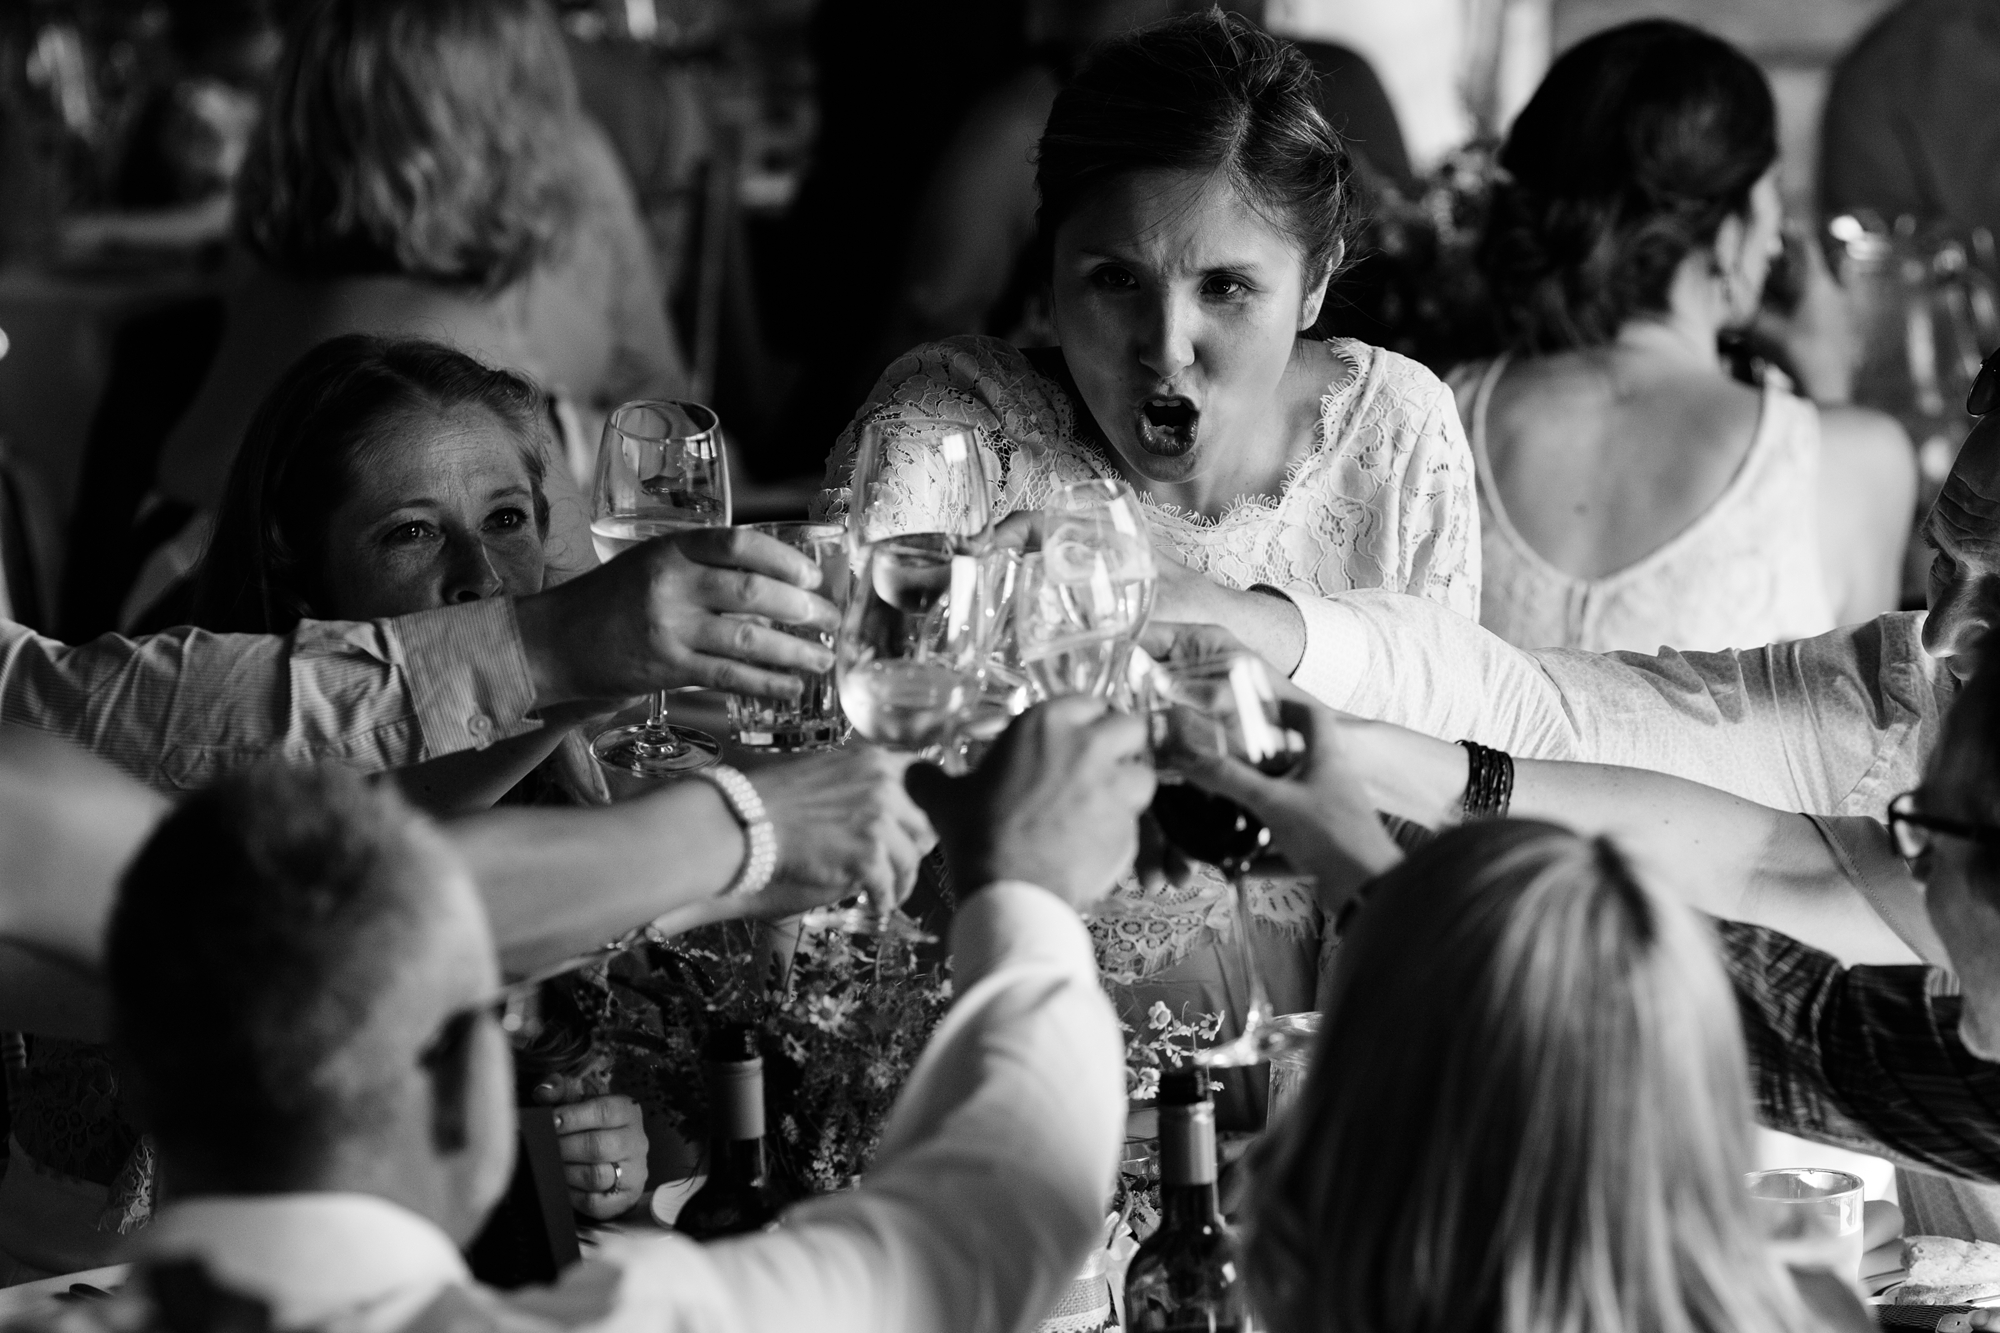 Guest drinking at doing shots york wedding photography